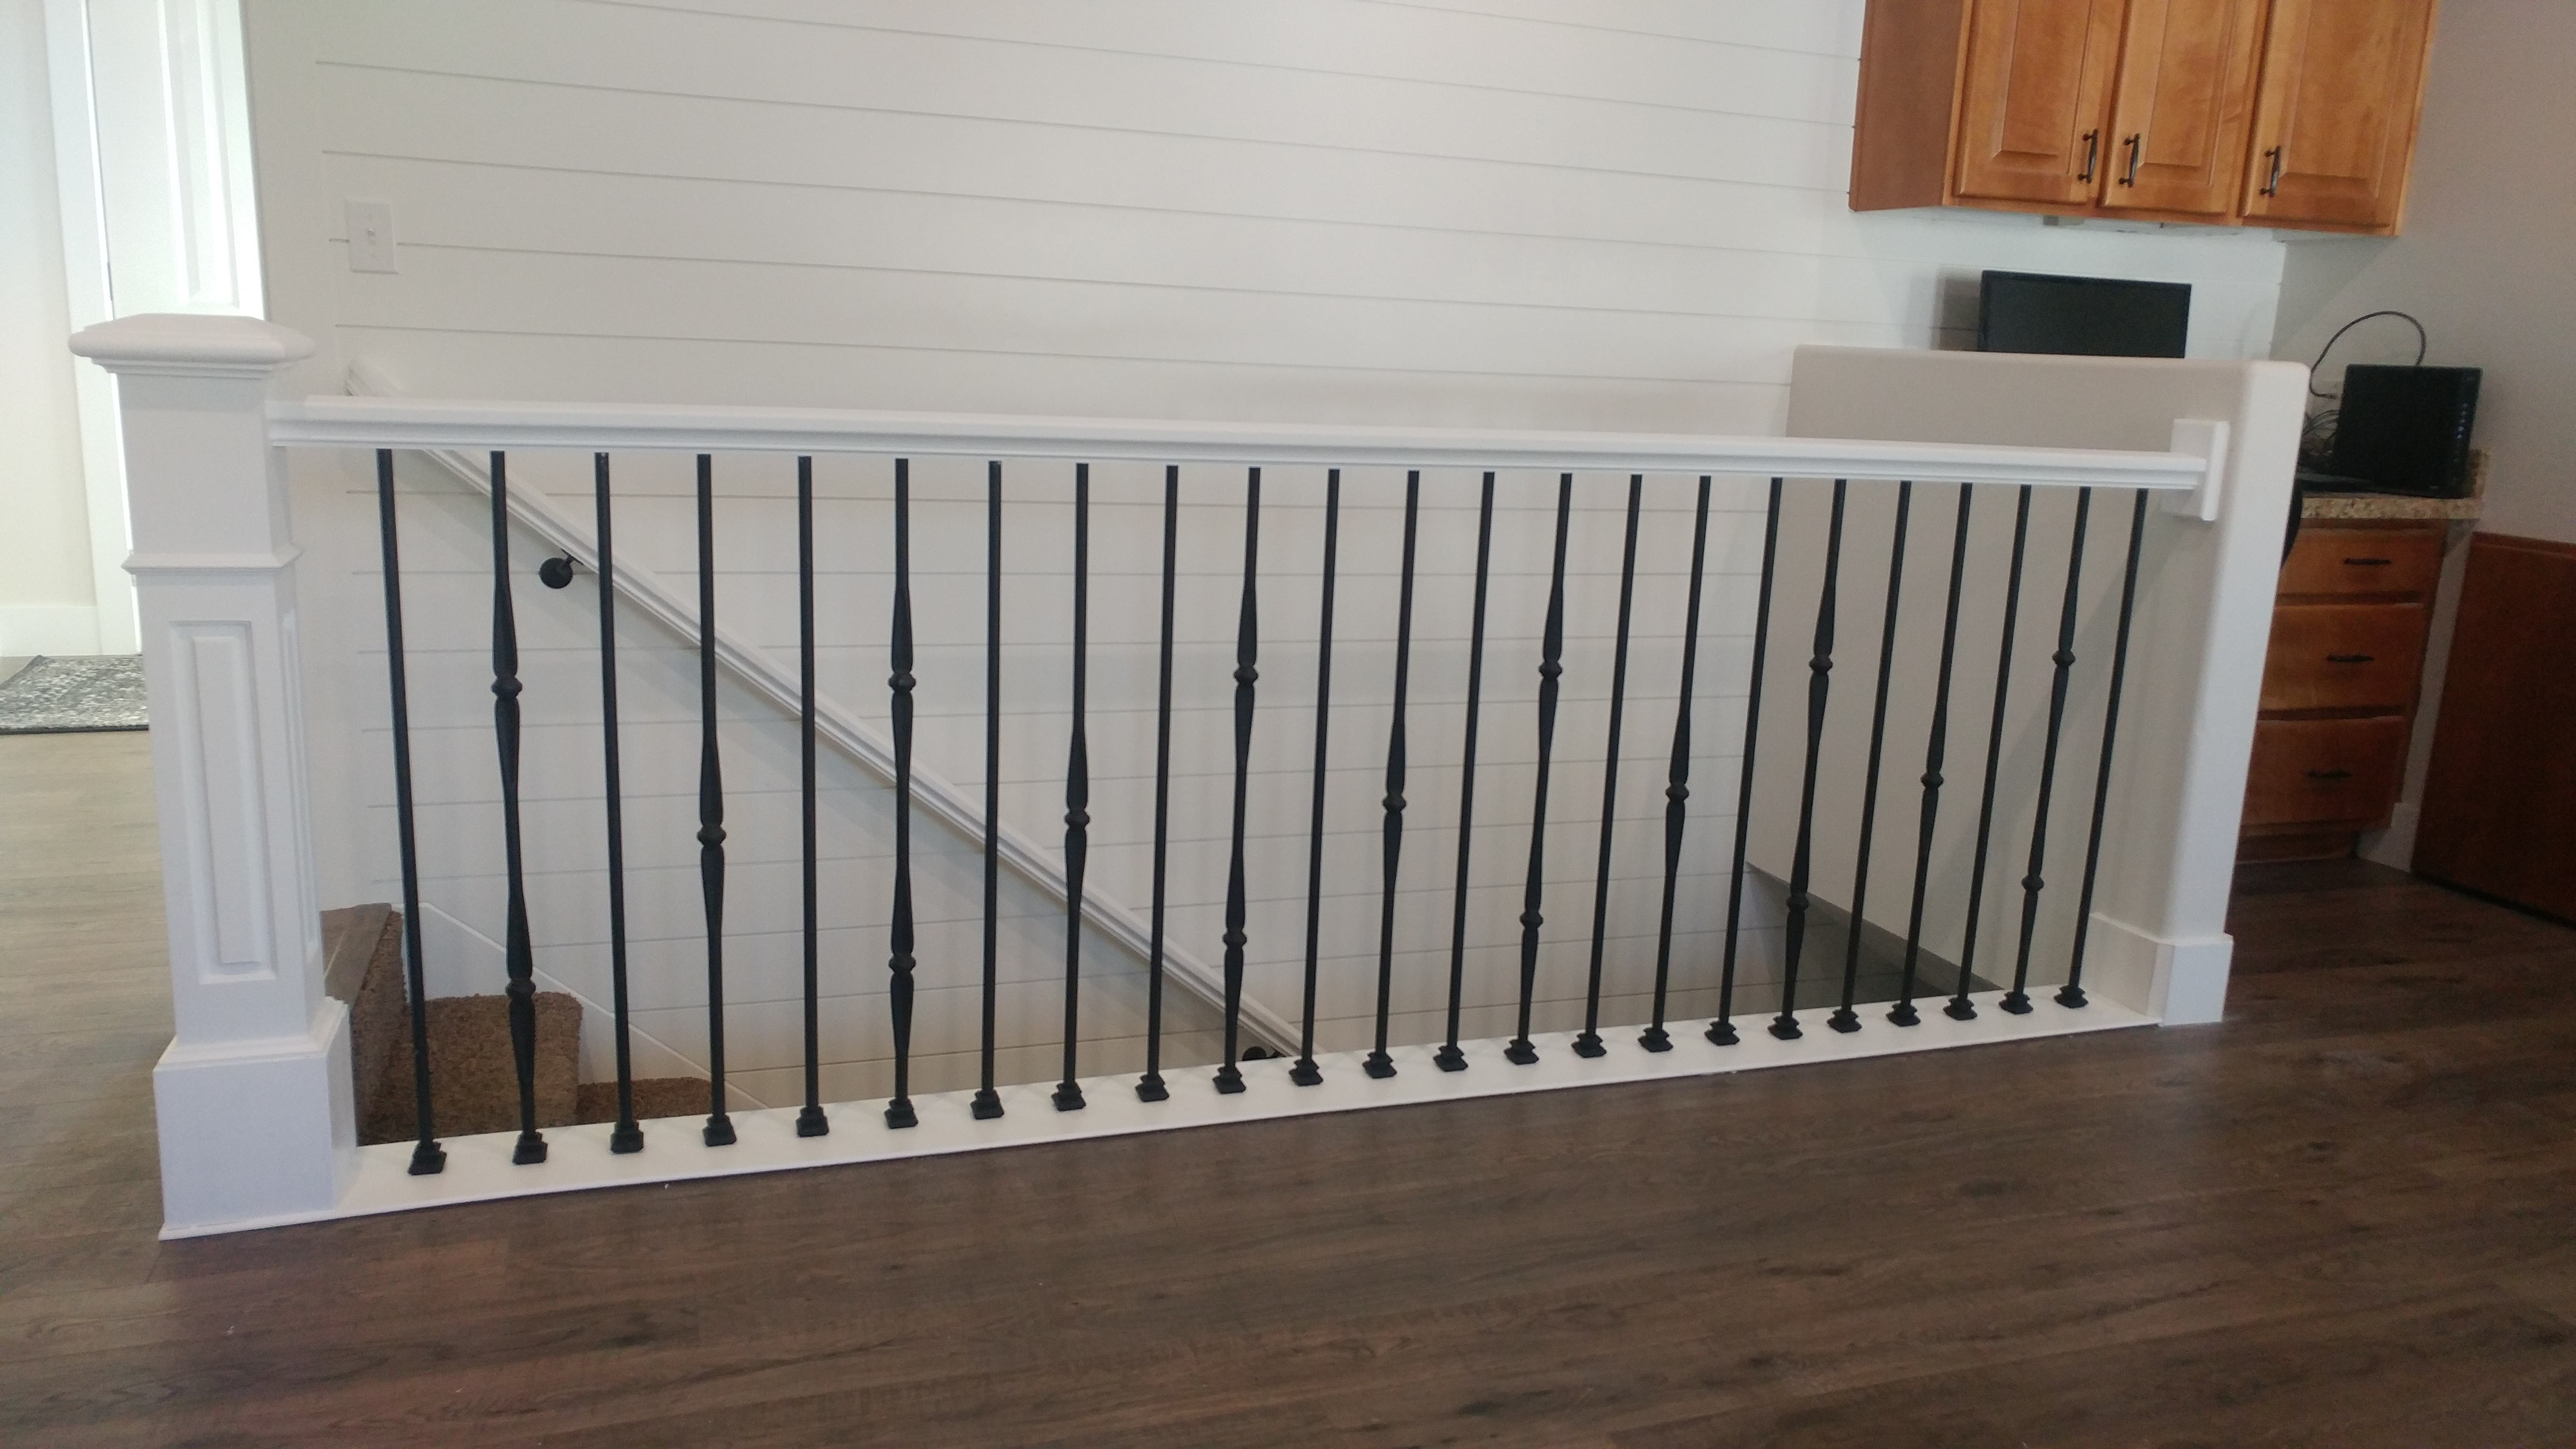 Salt Lake City Utah Custom Stair Railings And Banisters | White Wood Stair Railing | Entryway Stair | Metal | Outdoor Stair | Baluster Curved Stylish Overview Stair | Glass